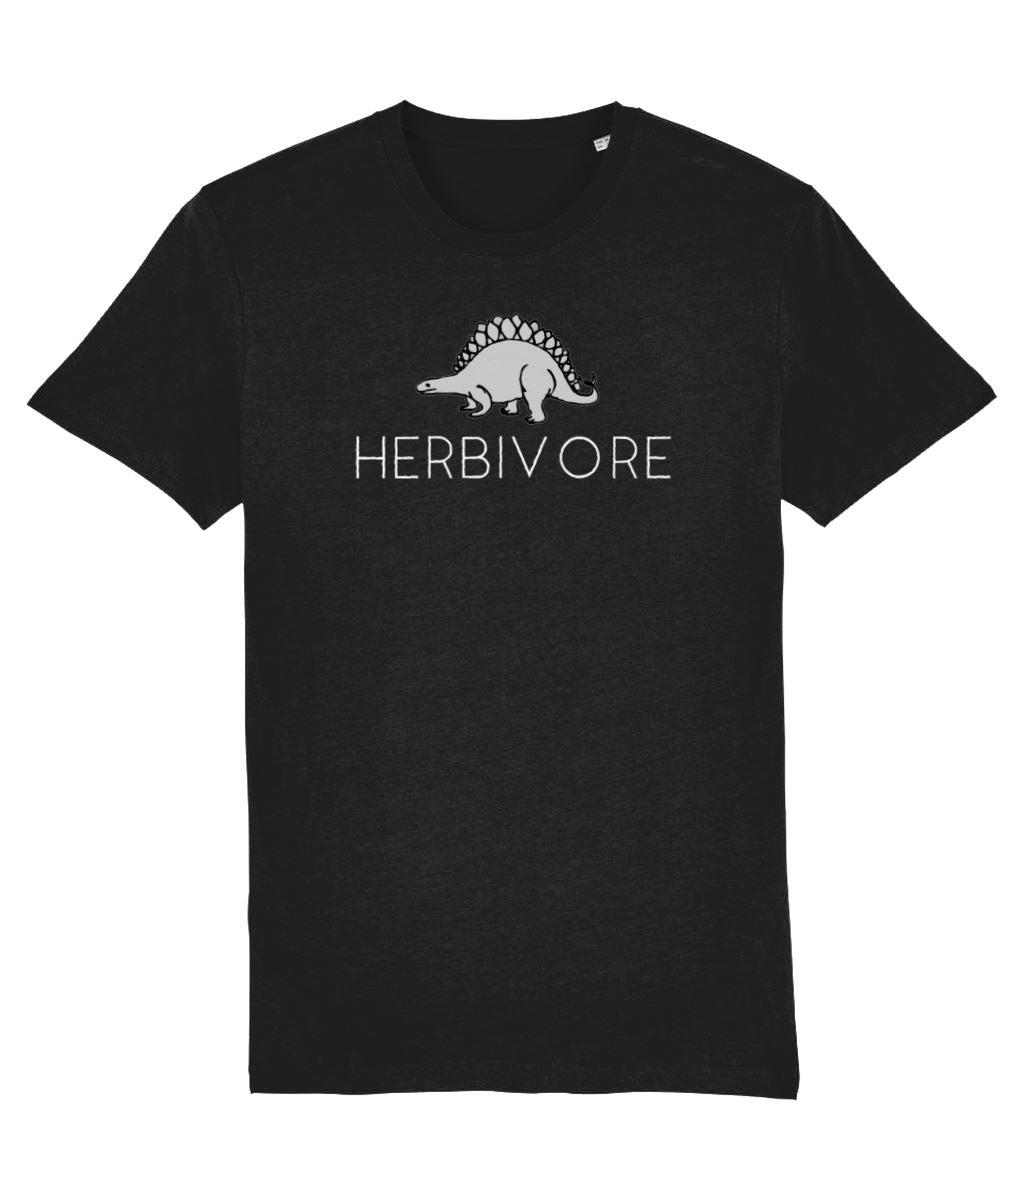 """Herbivore"" Stegosaurus Vegan T-Shirt - 100% Organic Cotton - Dark (Unisex) Clothing Vegan Original Black XX-Small"